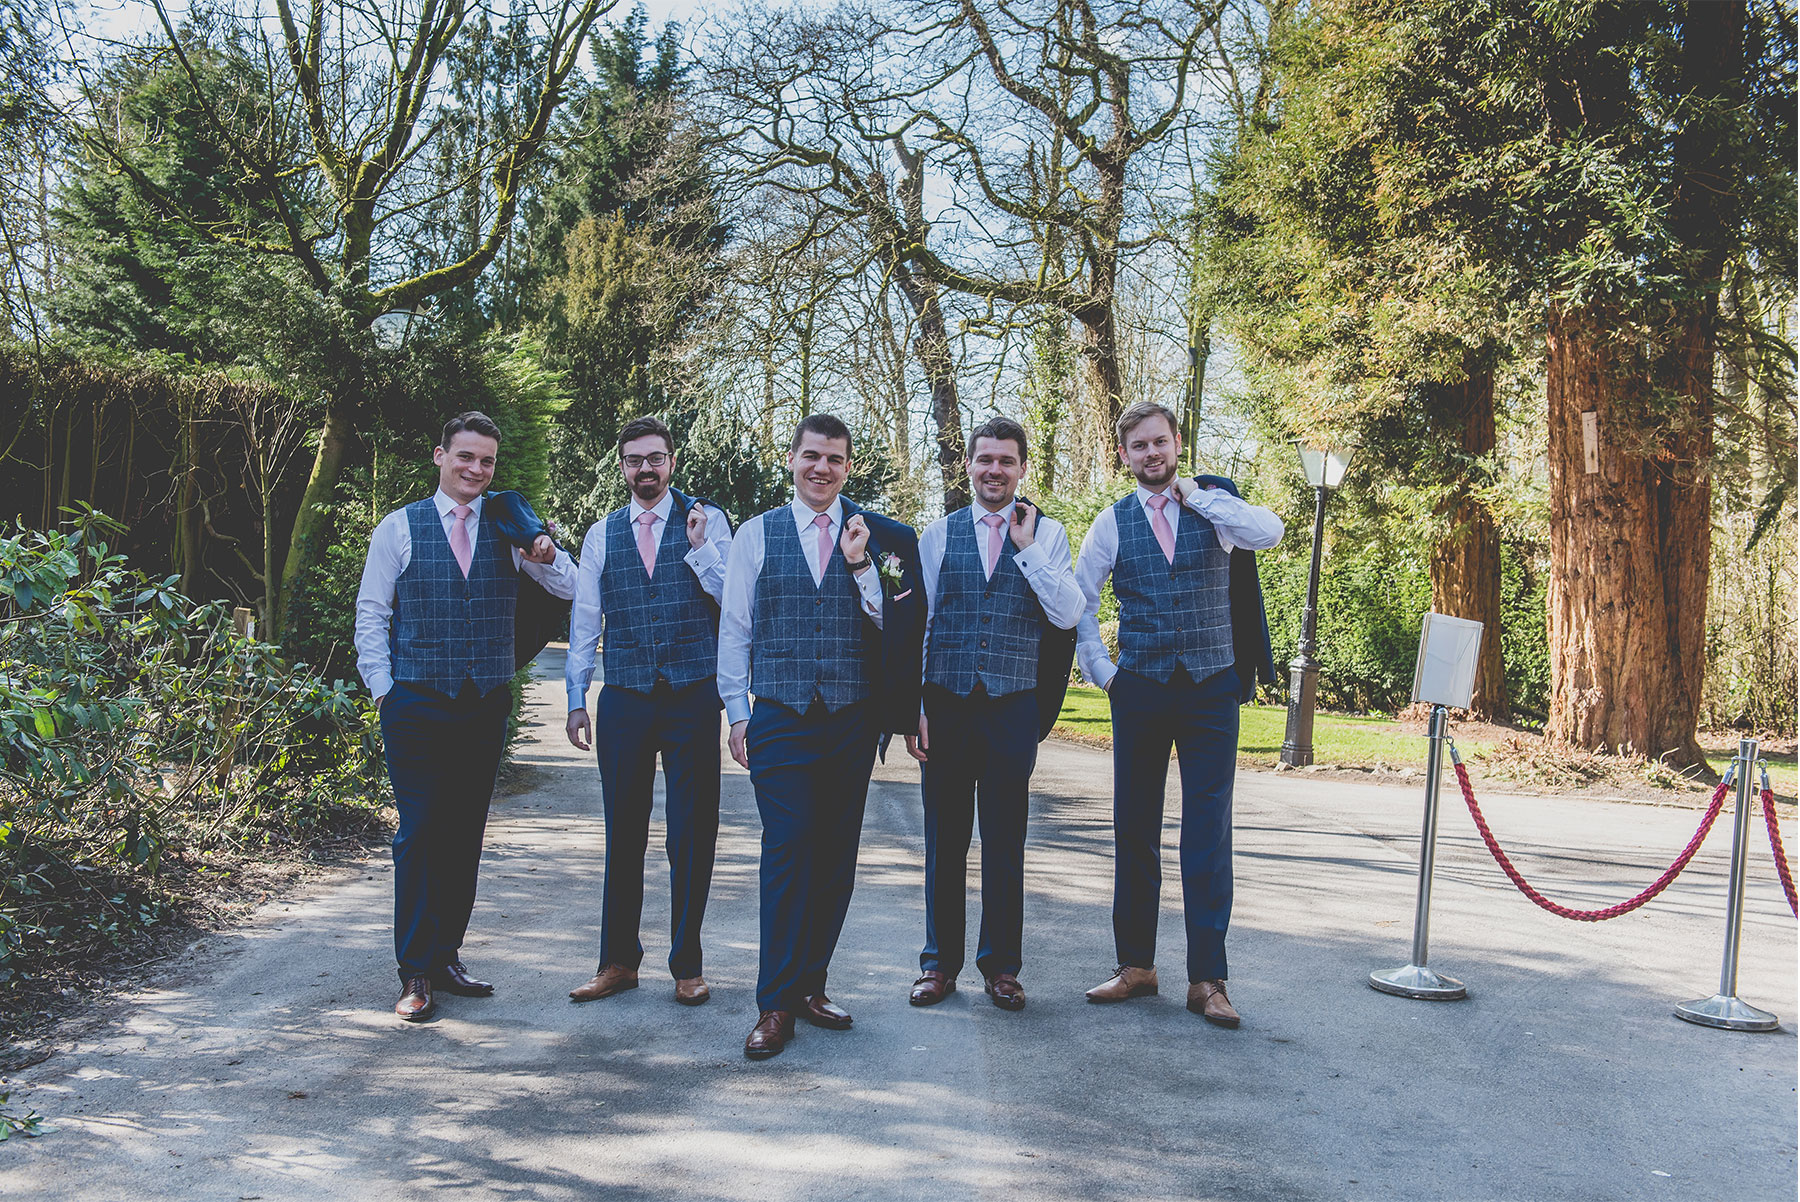 the wedding boys